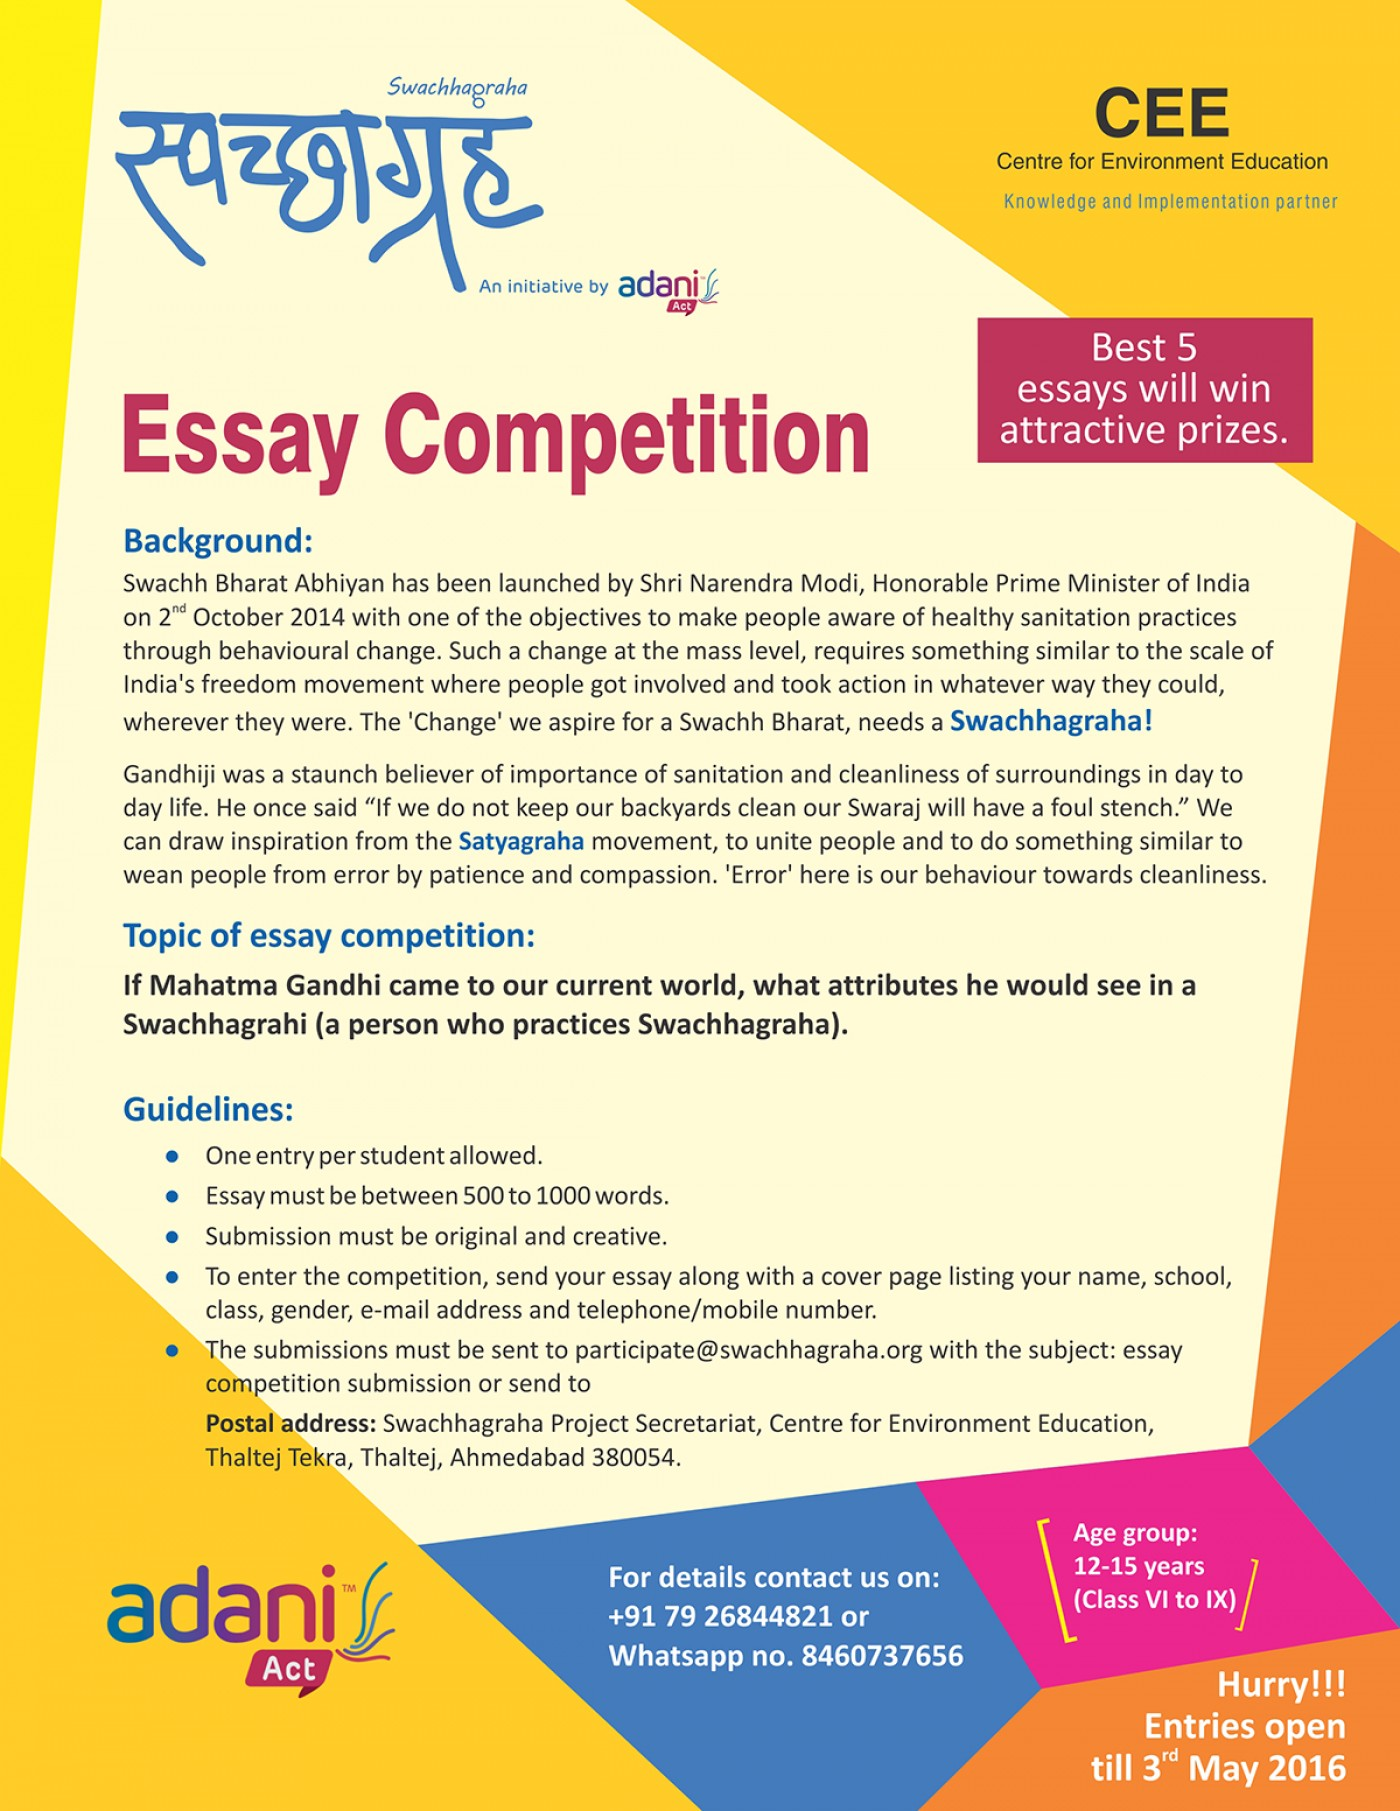 011 20180129171946essay20competition Essay About Cleanliness In School Phenomenal On Toilets Persuasive 1400